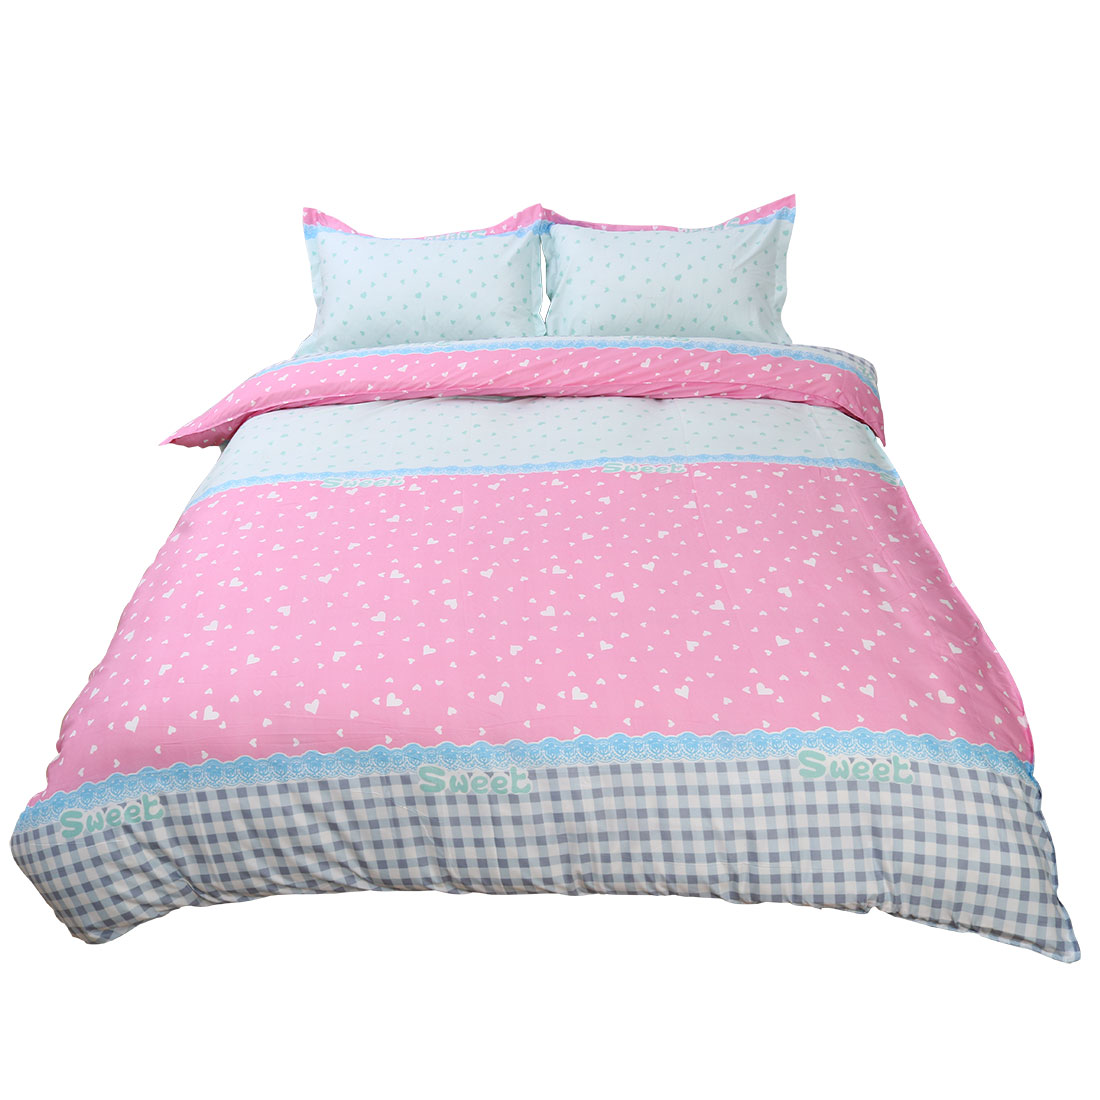 Hearts Pattern Duvet Cover Pillowcase Quilt Cover Bedding Set Double Size Pink